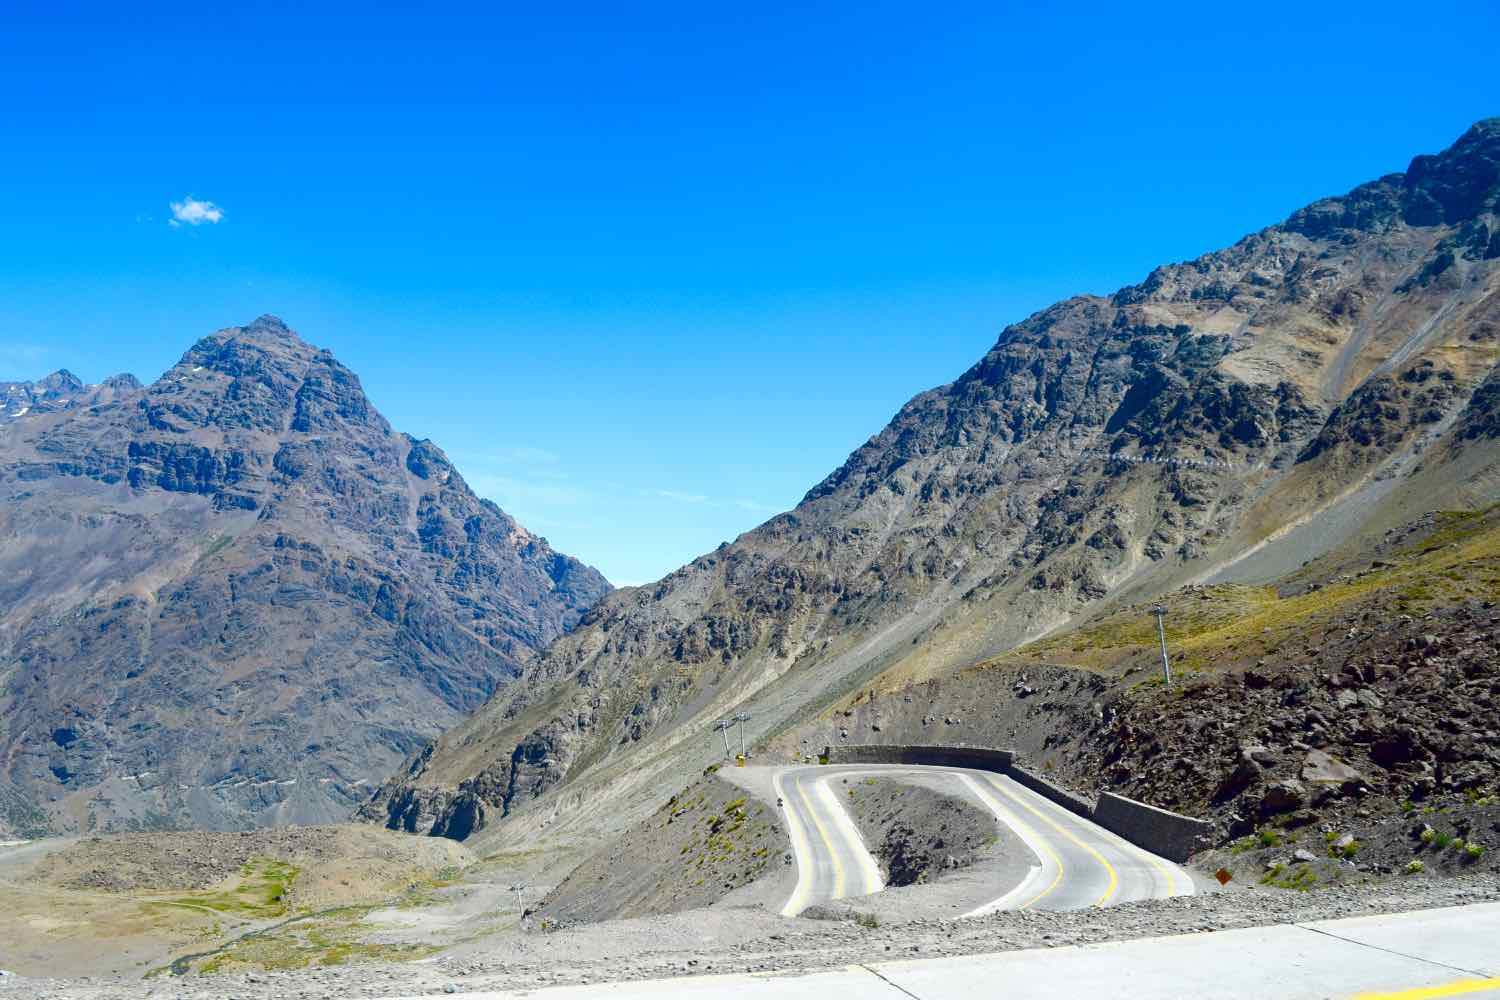 Imagine travelling these roads by bus in Chile